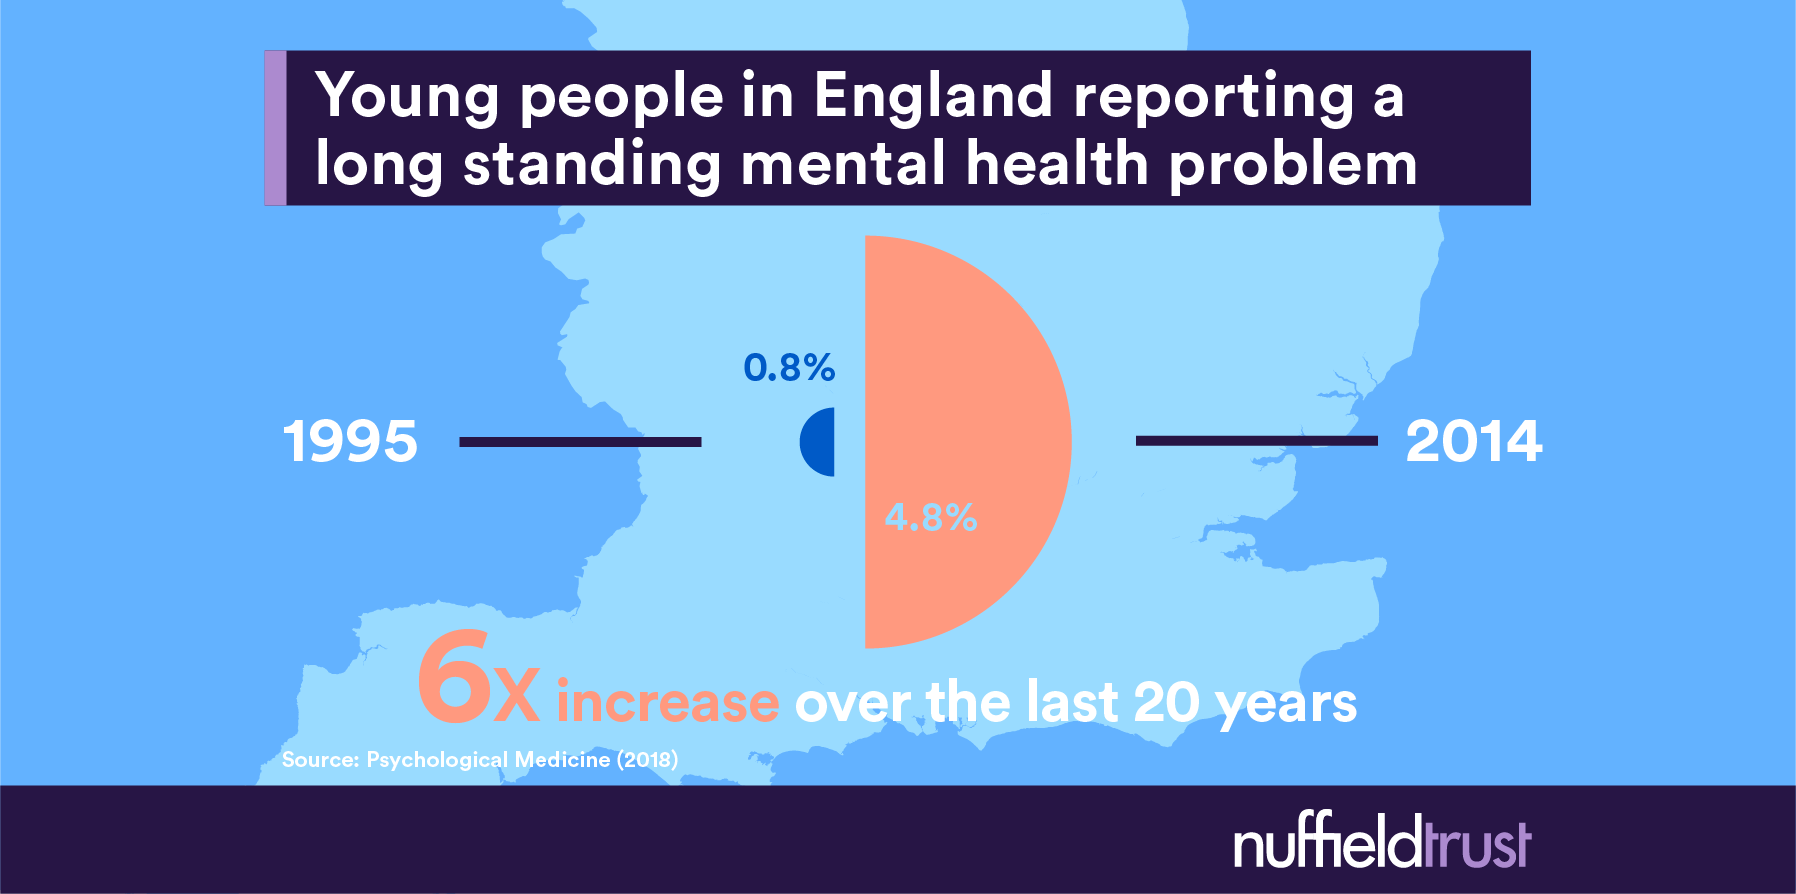 Young people in England reporting a long standing mental health problem